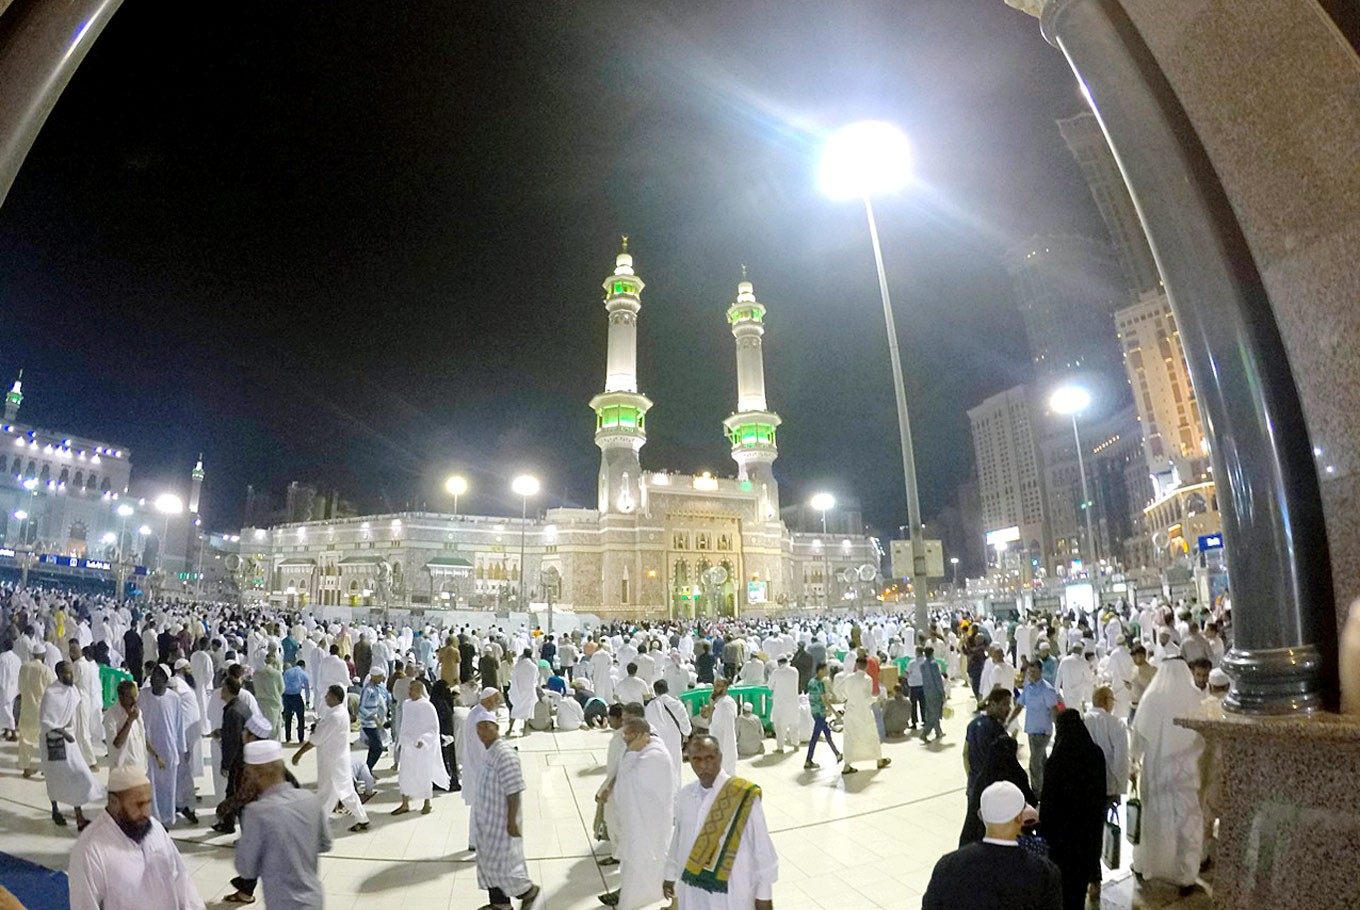 Night prayers: People gather to pray at Al-Haram Mosque in Mecca.